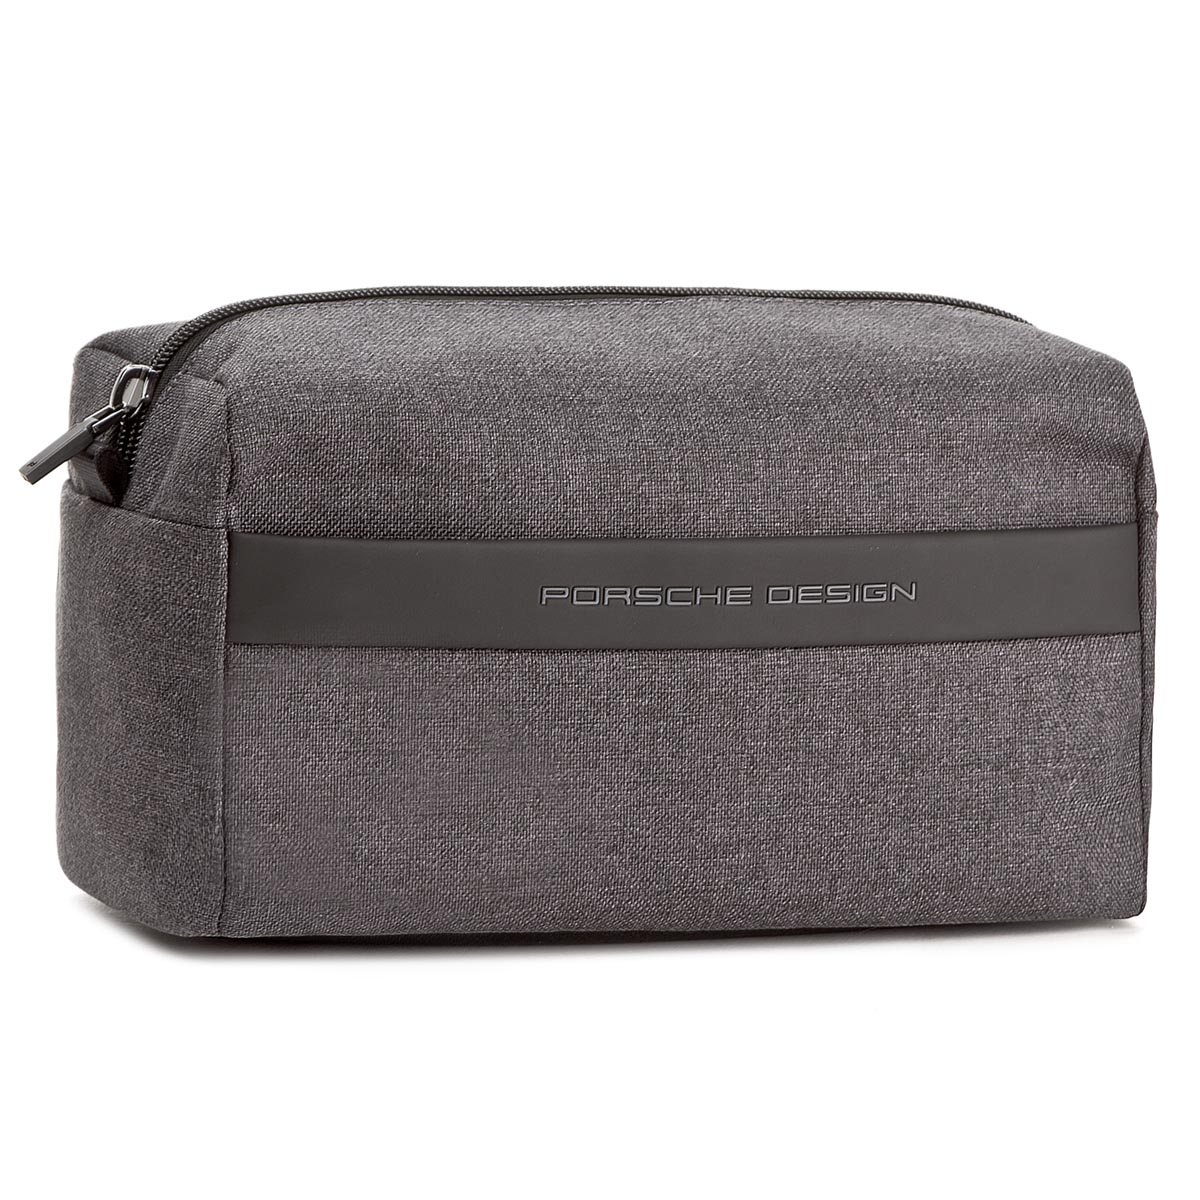 Geantă Pentru Cosmetice Porsche Design - Cargon 3.0 Washbag 4090002567 Dark Grey 802 imagine epantofi.ro 2021